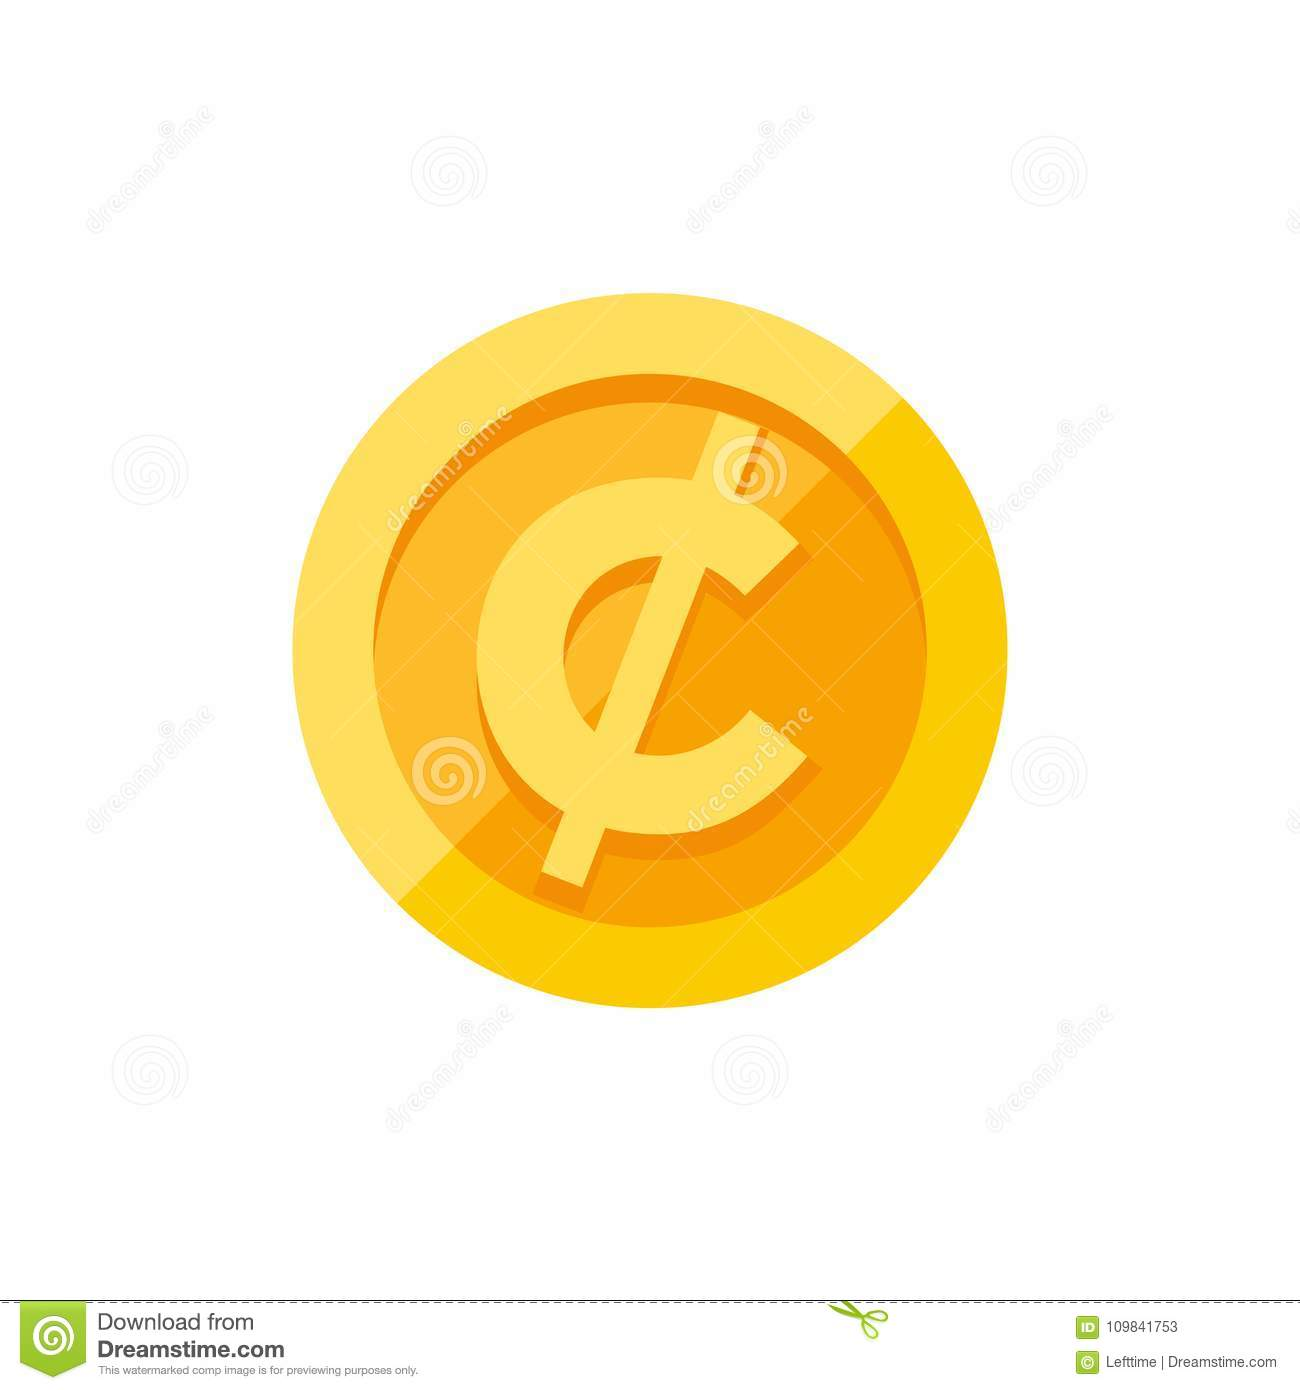 Cent Or Centavo Currency Symbol On Gold Coin Flat Style Stock Vector